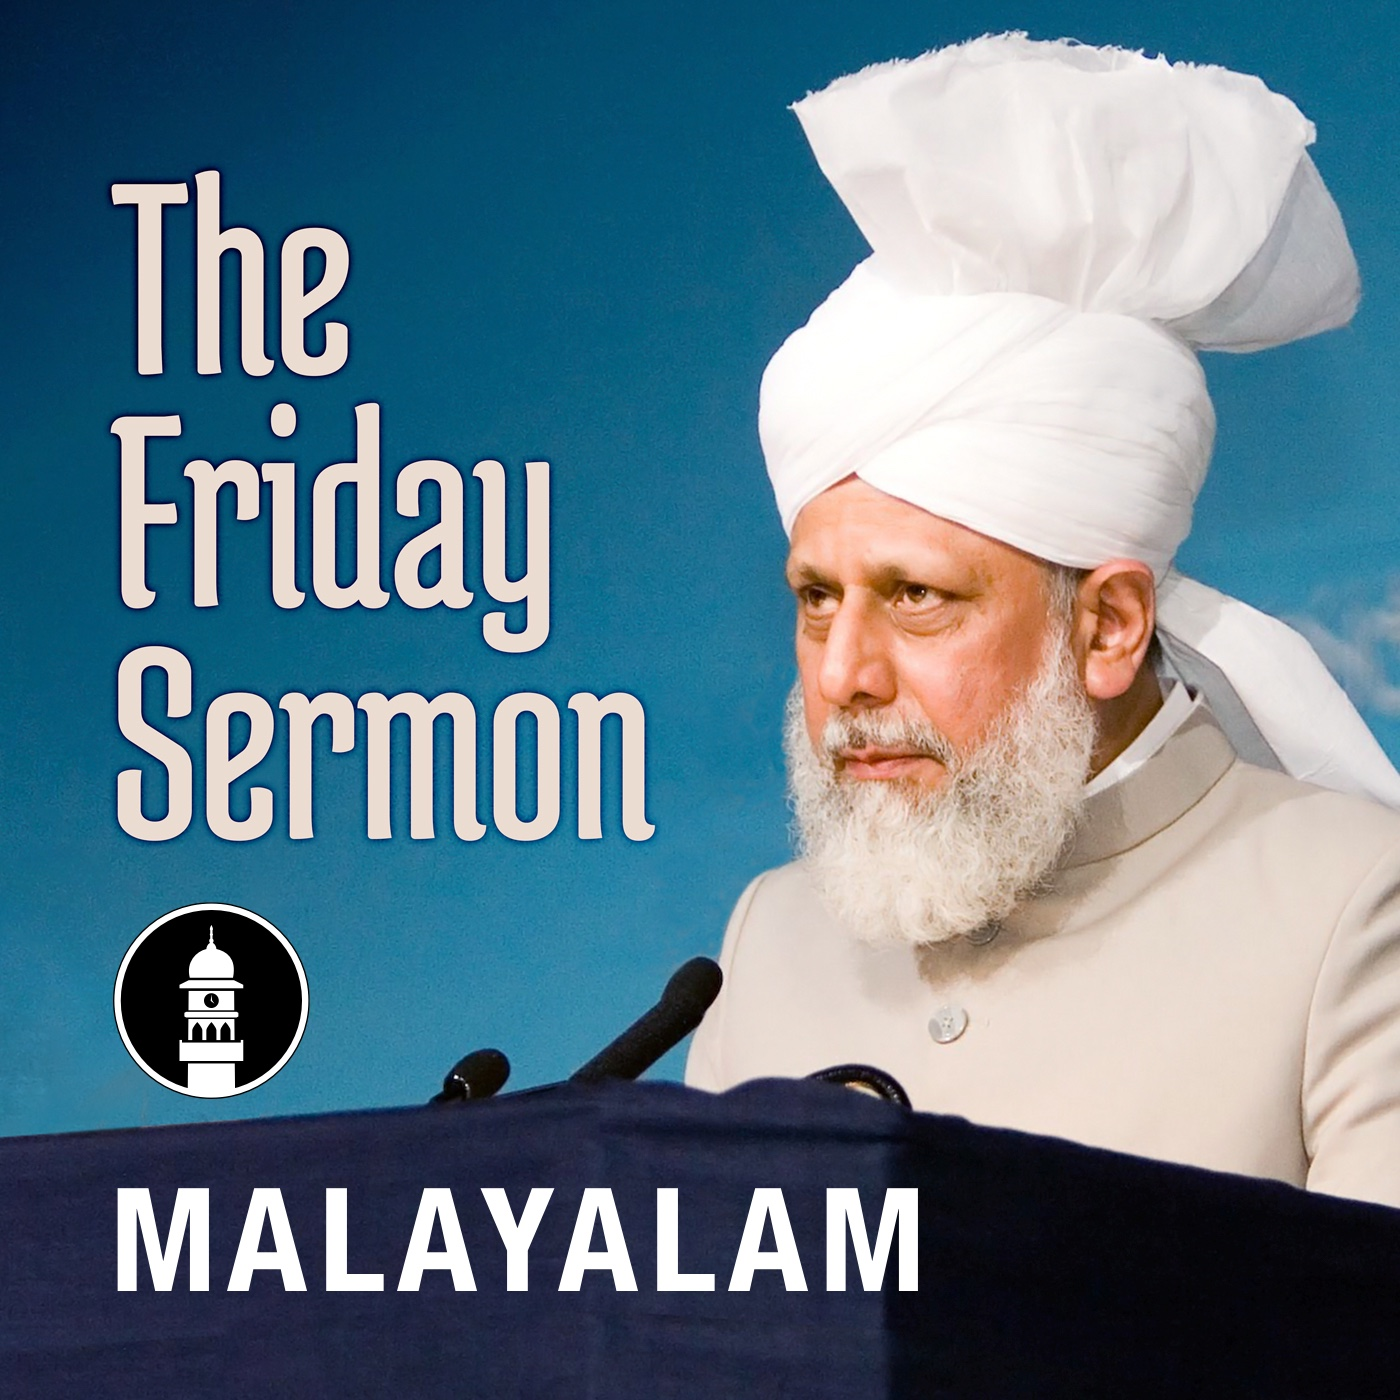 Malayalam Friday Sermon by Head of Ahmadiyya Muslim Community